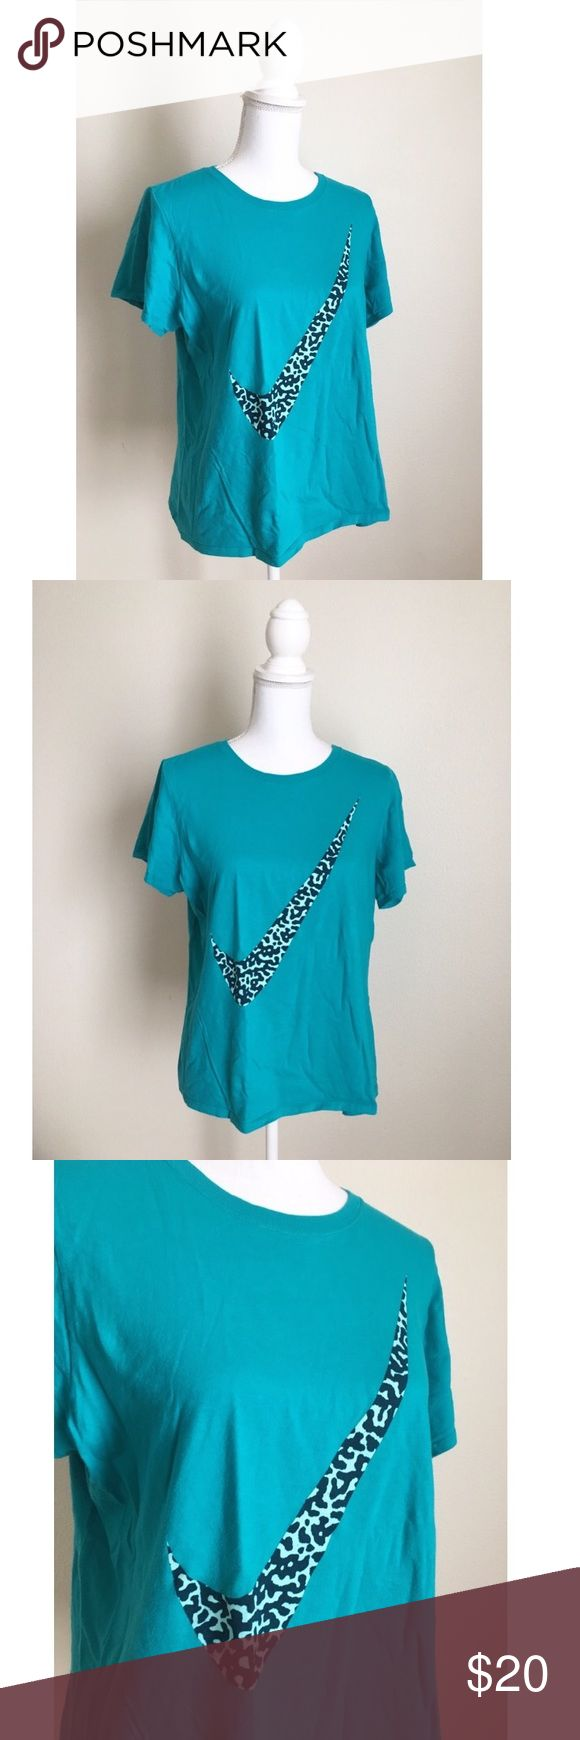 NIKE Leopard Swoosh Tee New! ✨ NIKE Favorite Tee - Blue tee with leopard swoosh across the front ✨ Size XL Nike Tops